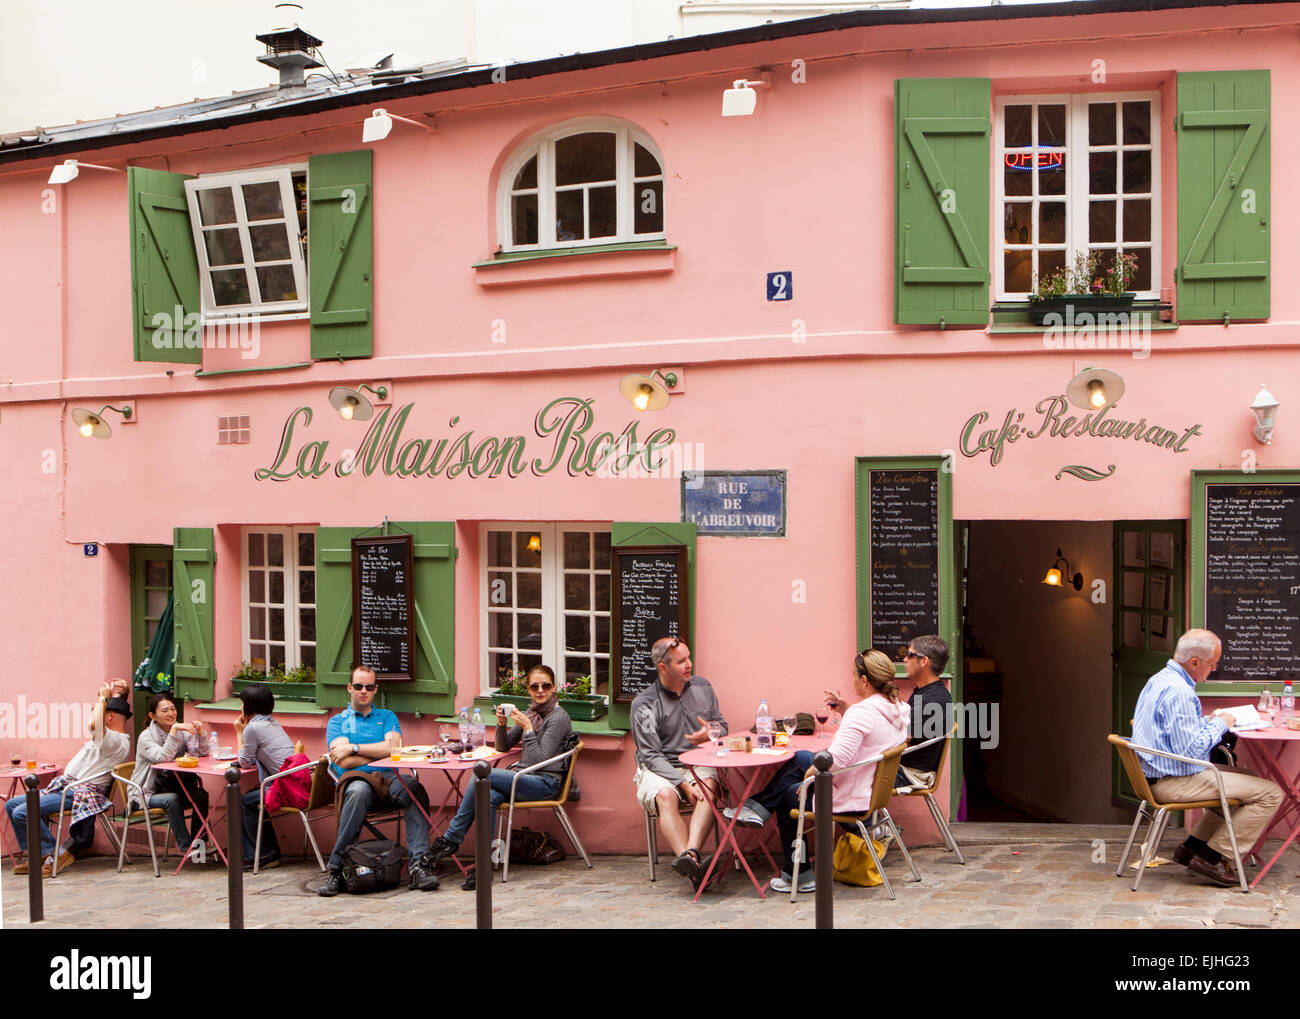 Outdoor eating at la maison rose cafe montmartre paris for Restaurant miroir montmartre